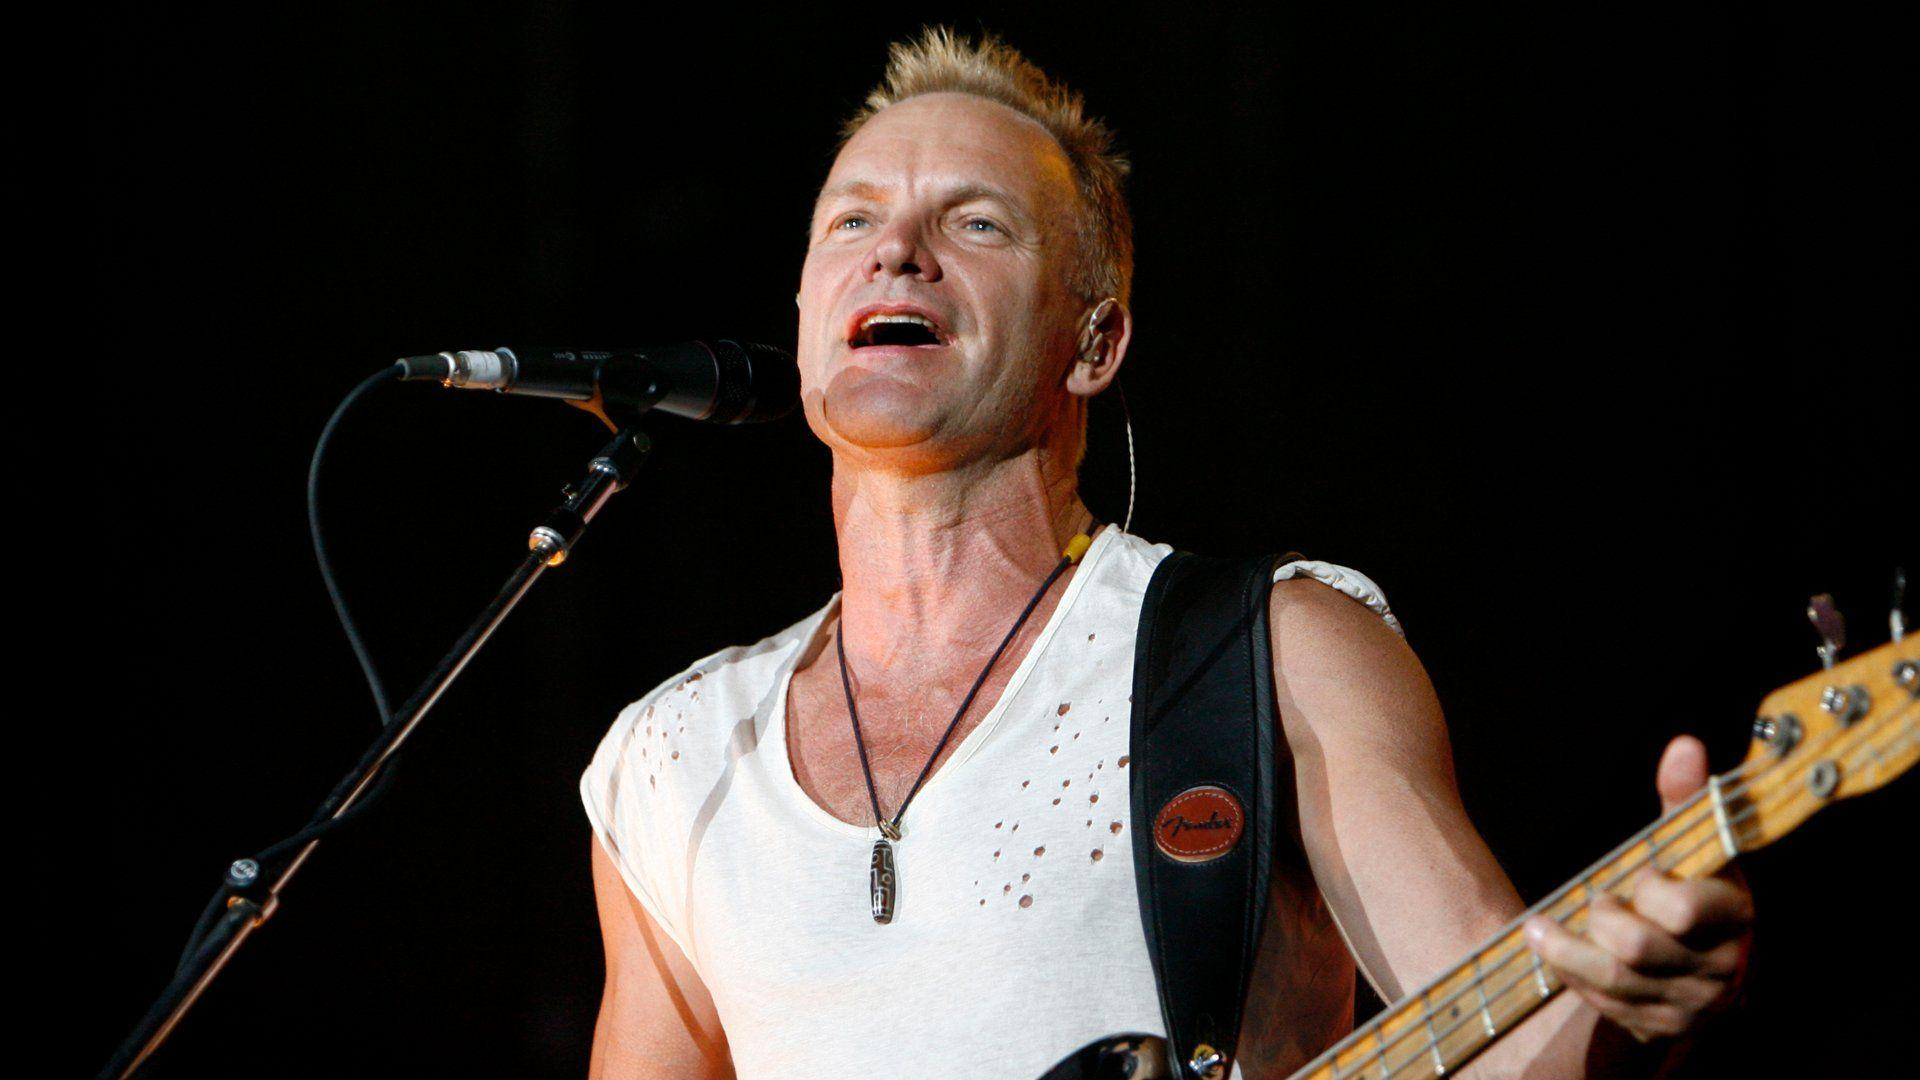 Sting Full HD Wallpaper and Background | 1920x1080 | ID:309620